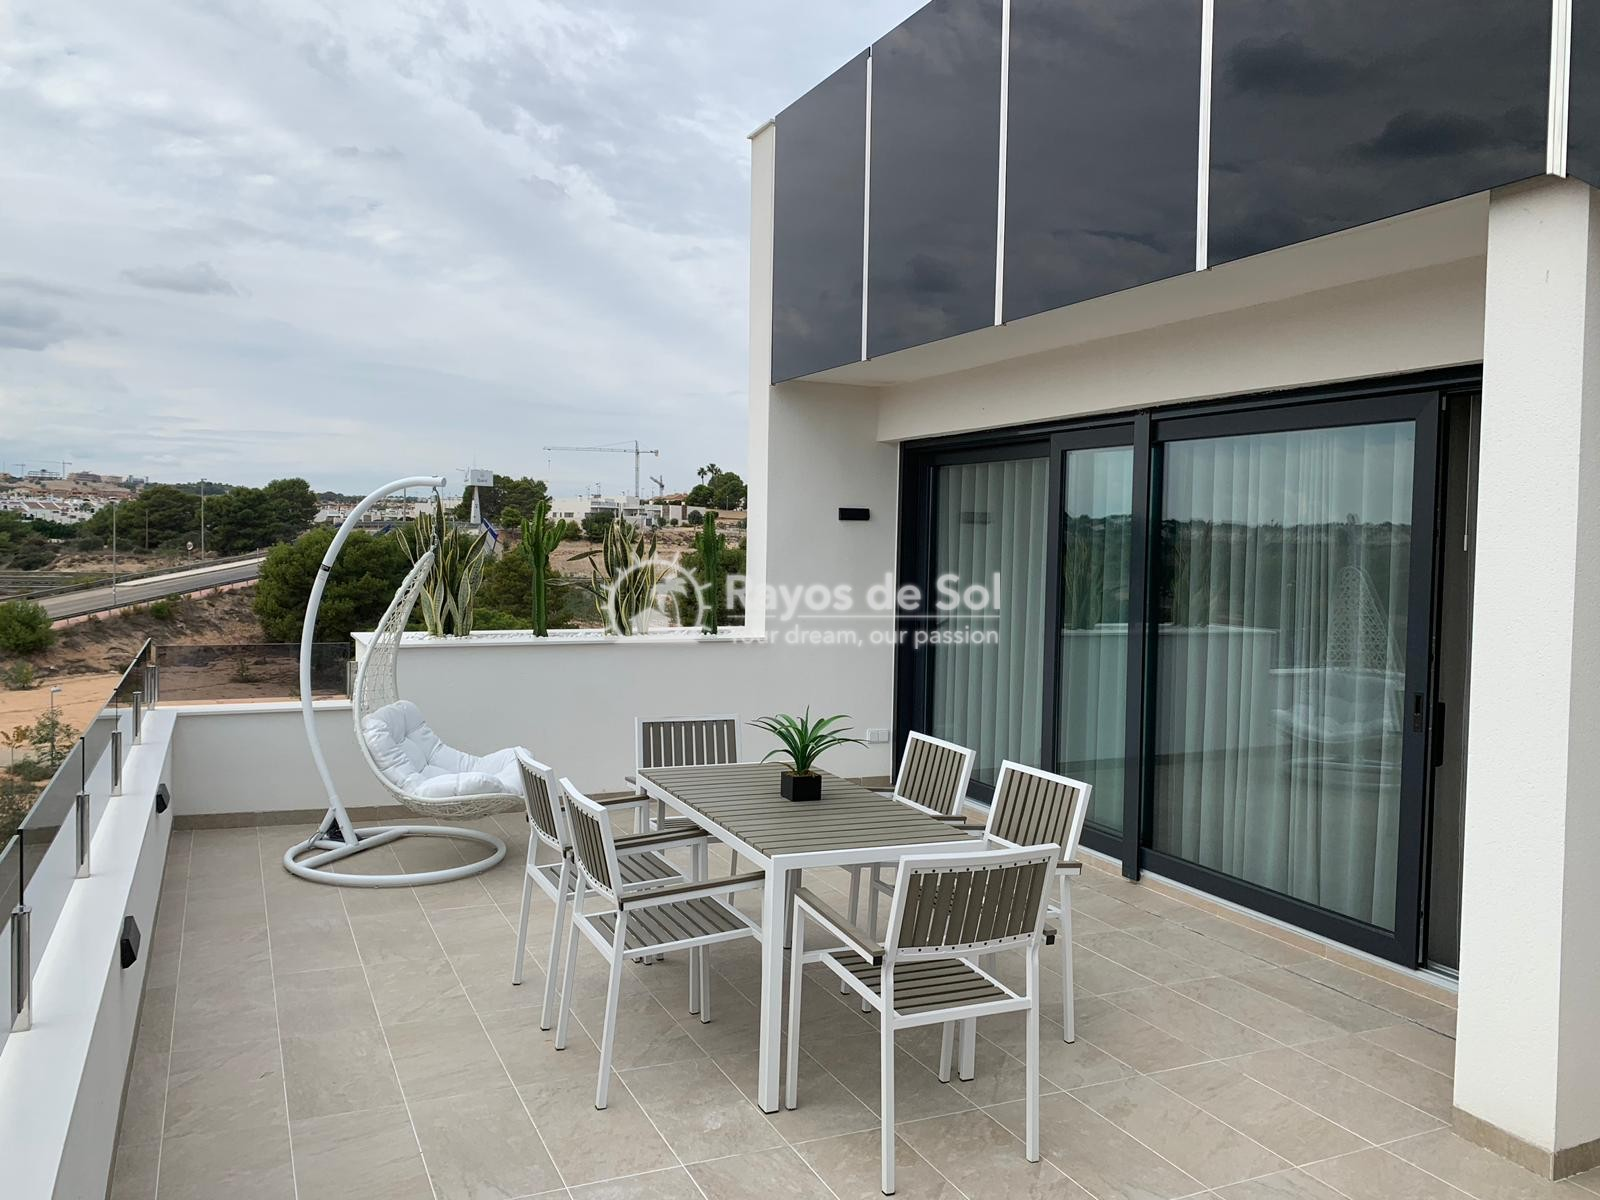 Keyready penthouse  in Orihuela Costa, Costa Blanca (amanecer3-ph) - 15